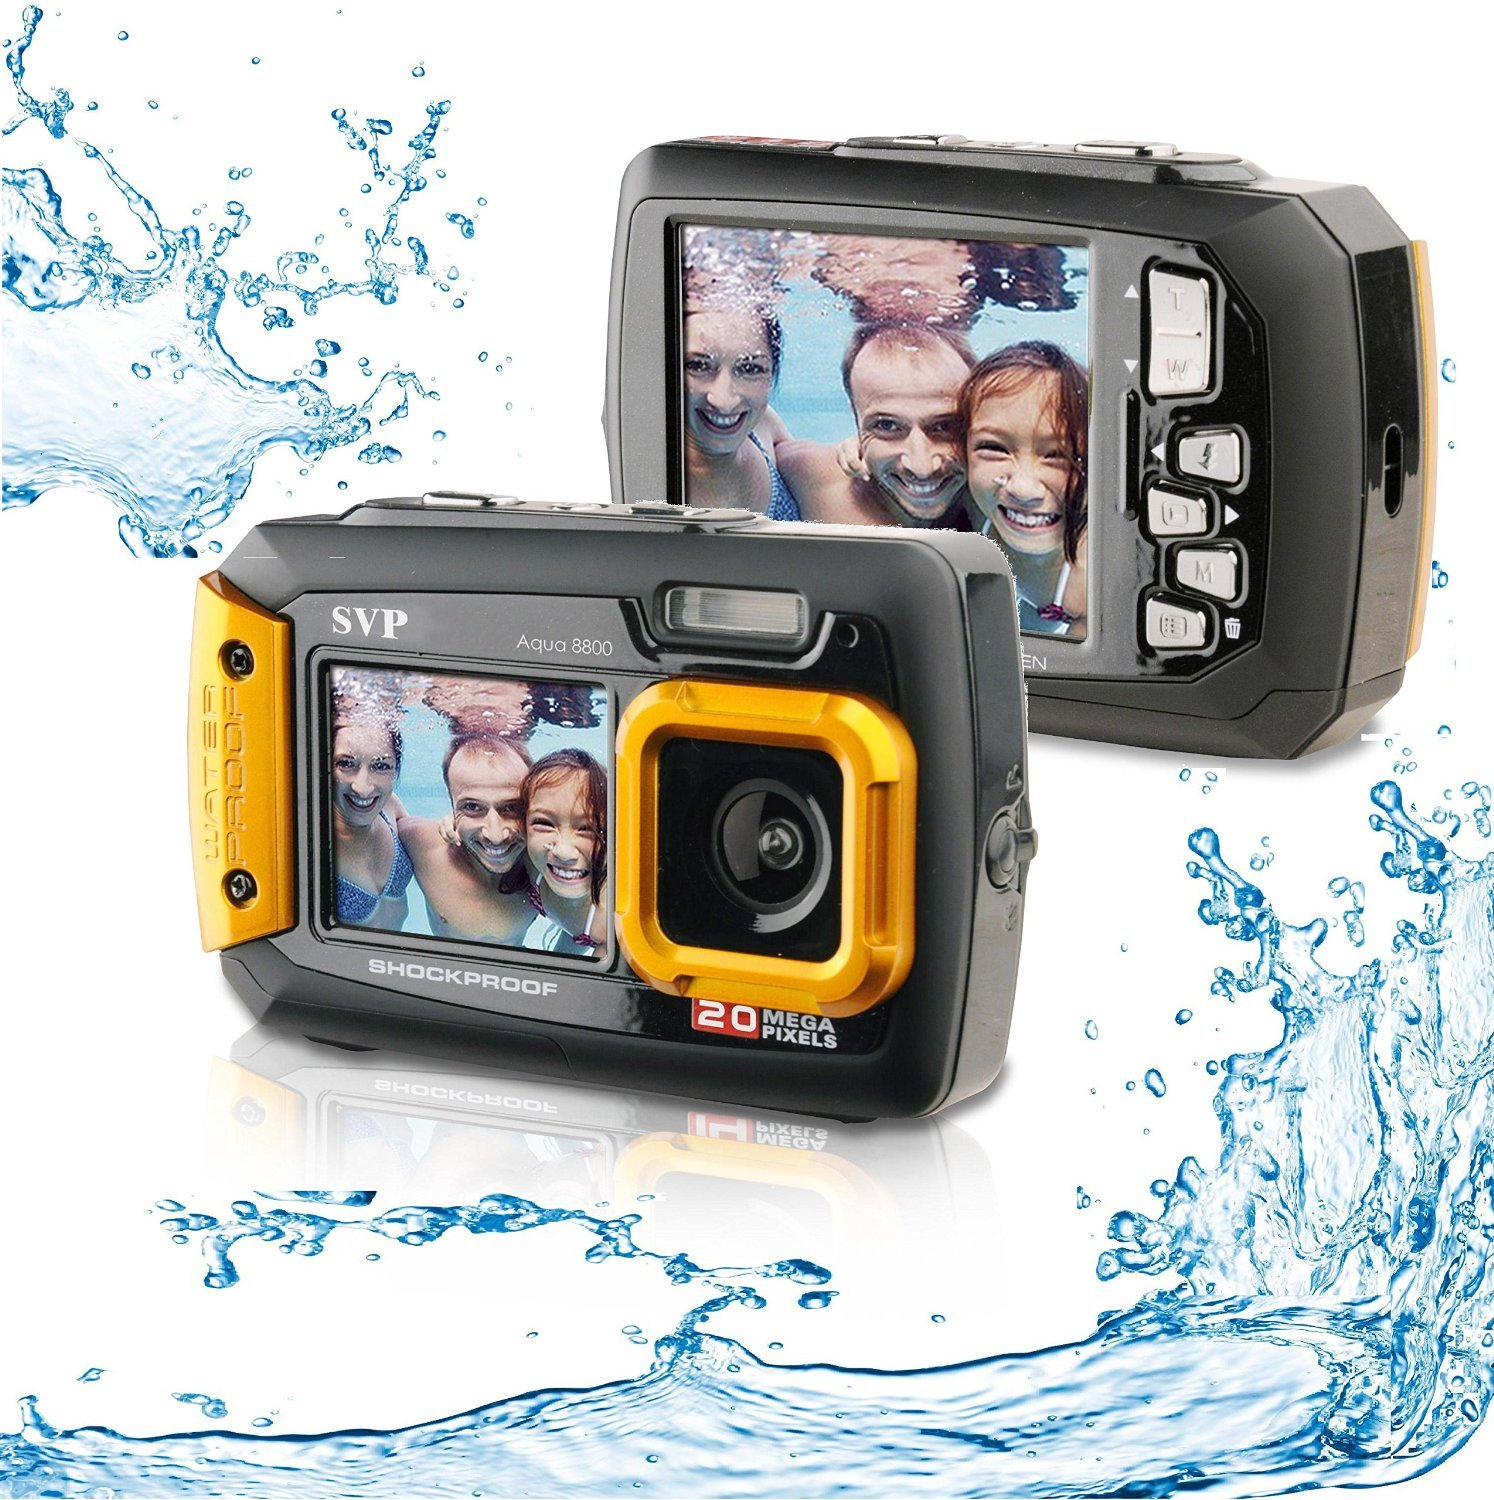 Silicon Valley Imaging Corp 8800-orange Waterproof Digital Camera (Body Only)